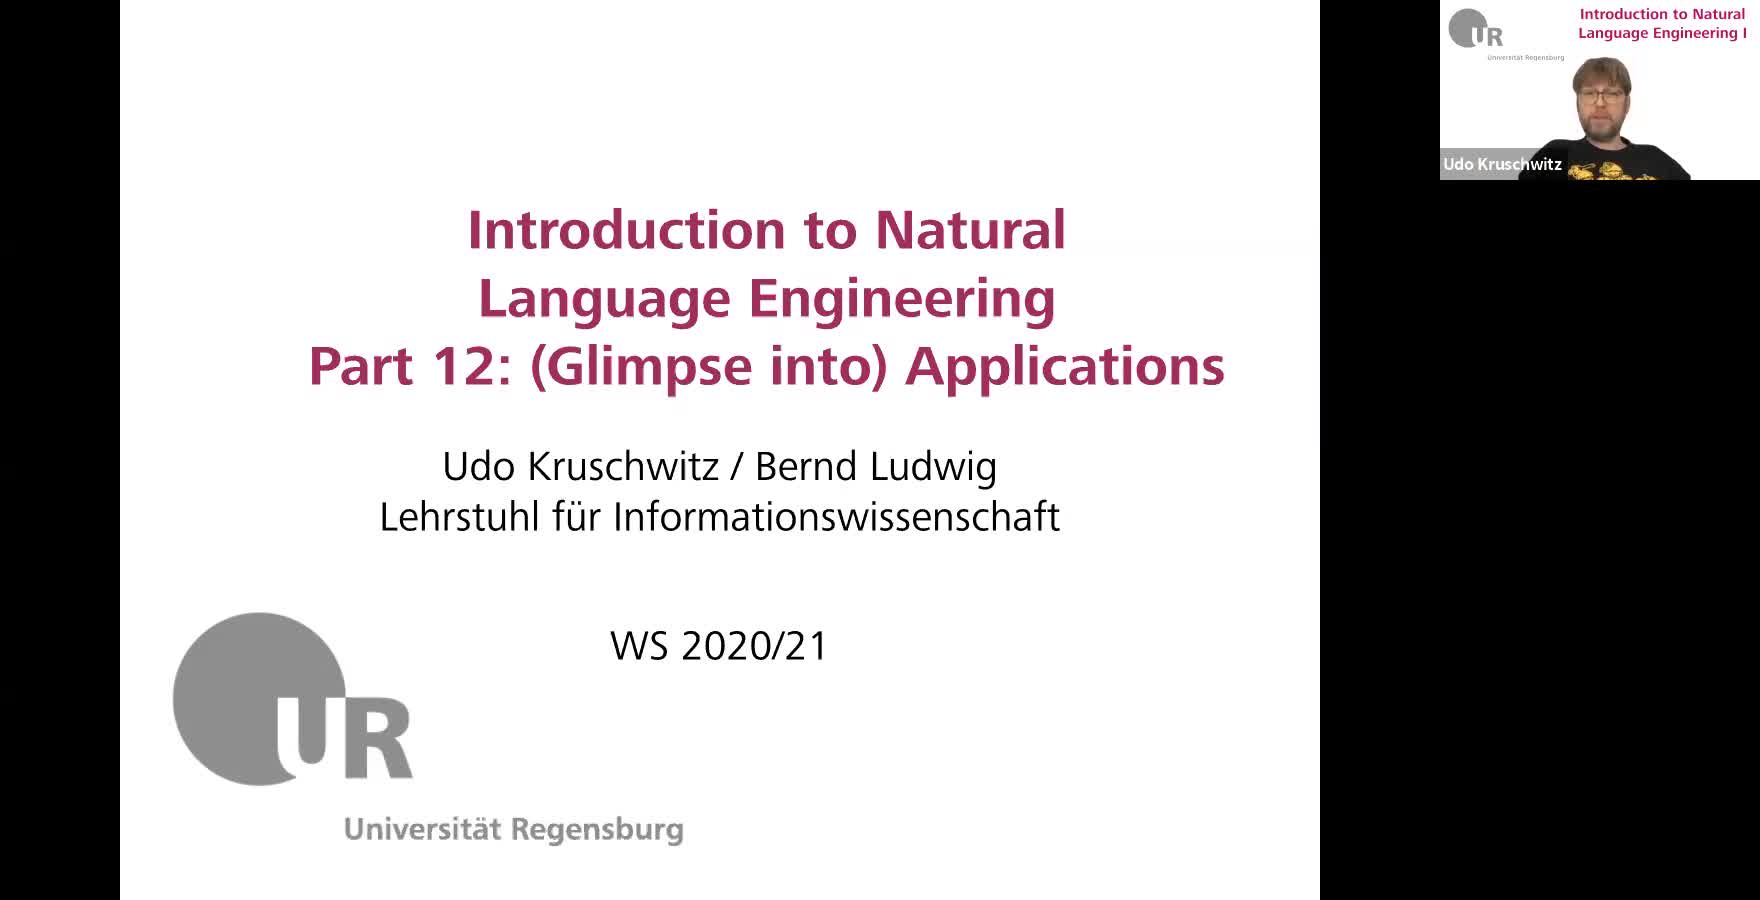 Introduction to Natural Language Engineering 1 / Informationslinguistik 1 - Lecture 12 (Applications / Anwendungsbeispiele)